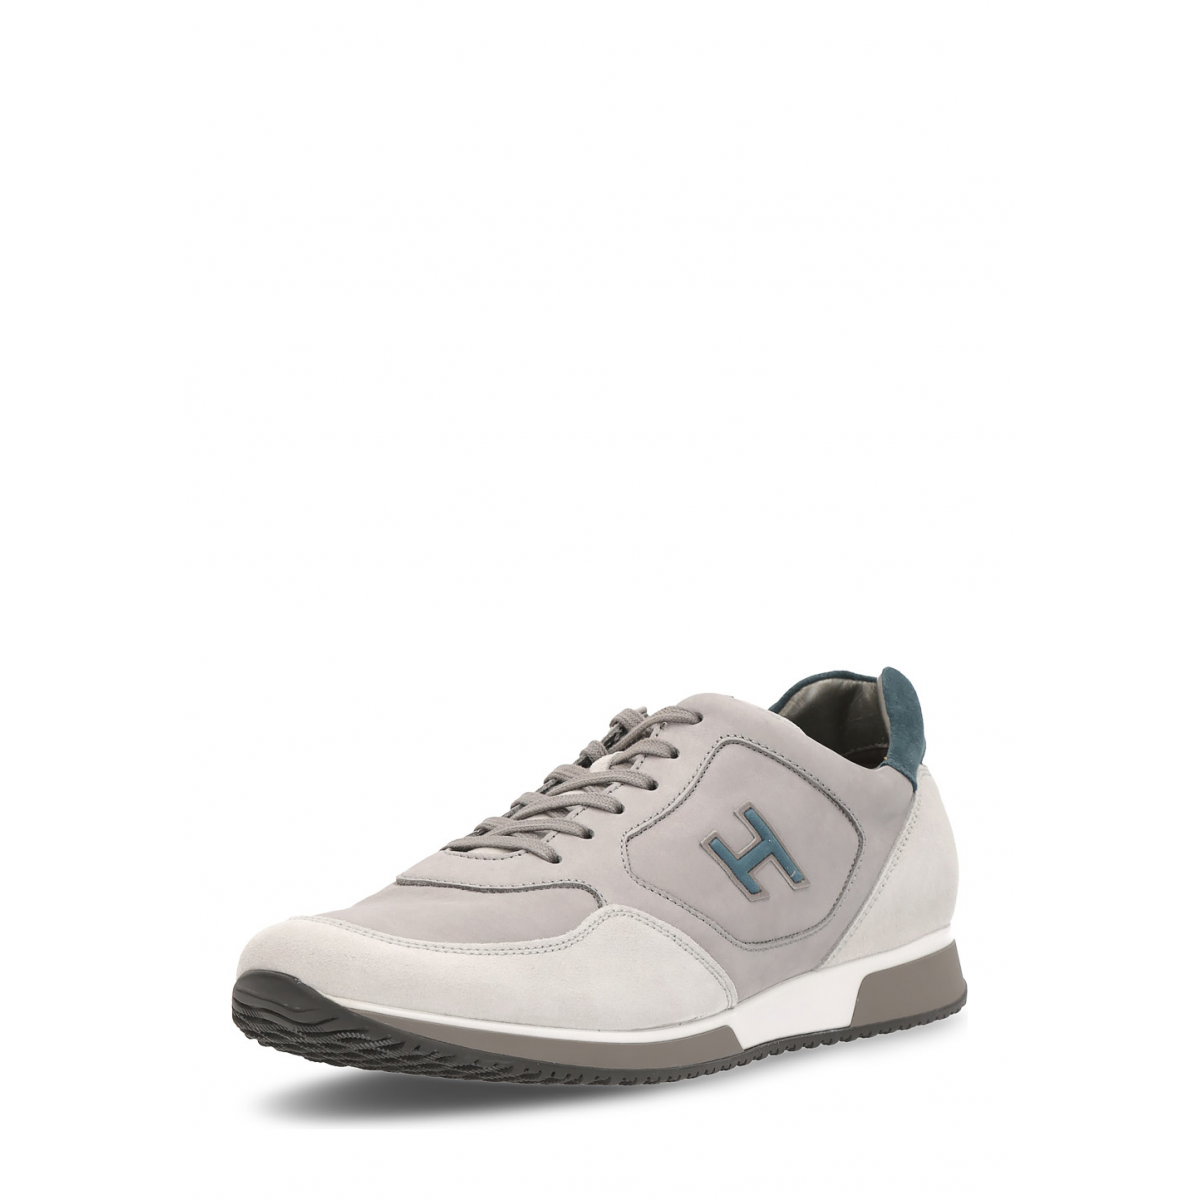 Primary image for Hogan Mens Sneaker Light Grey HXM1980H67166XX26E7